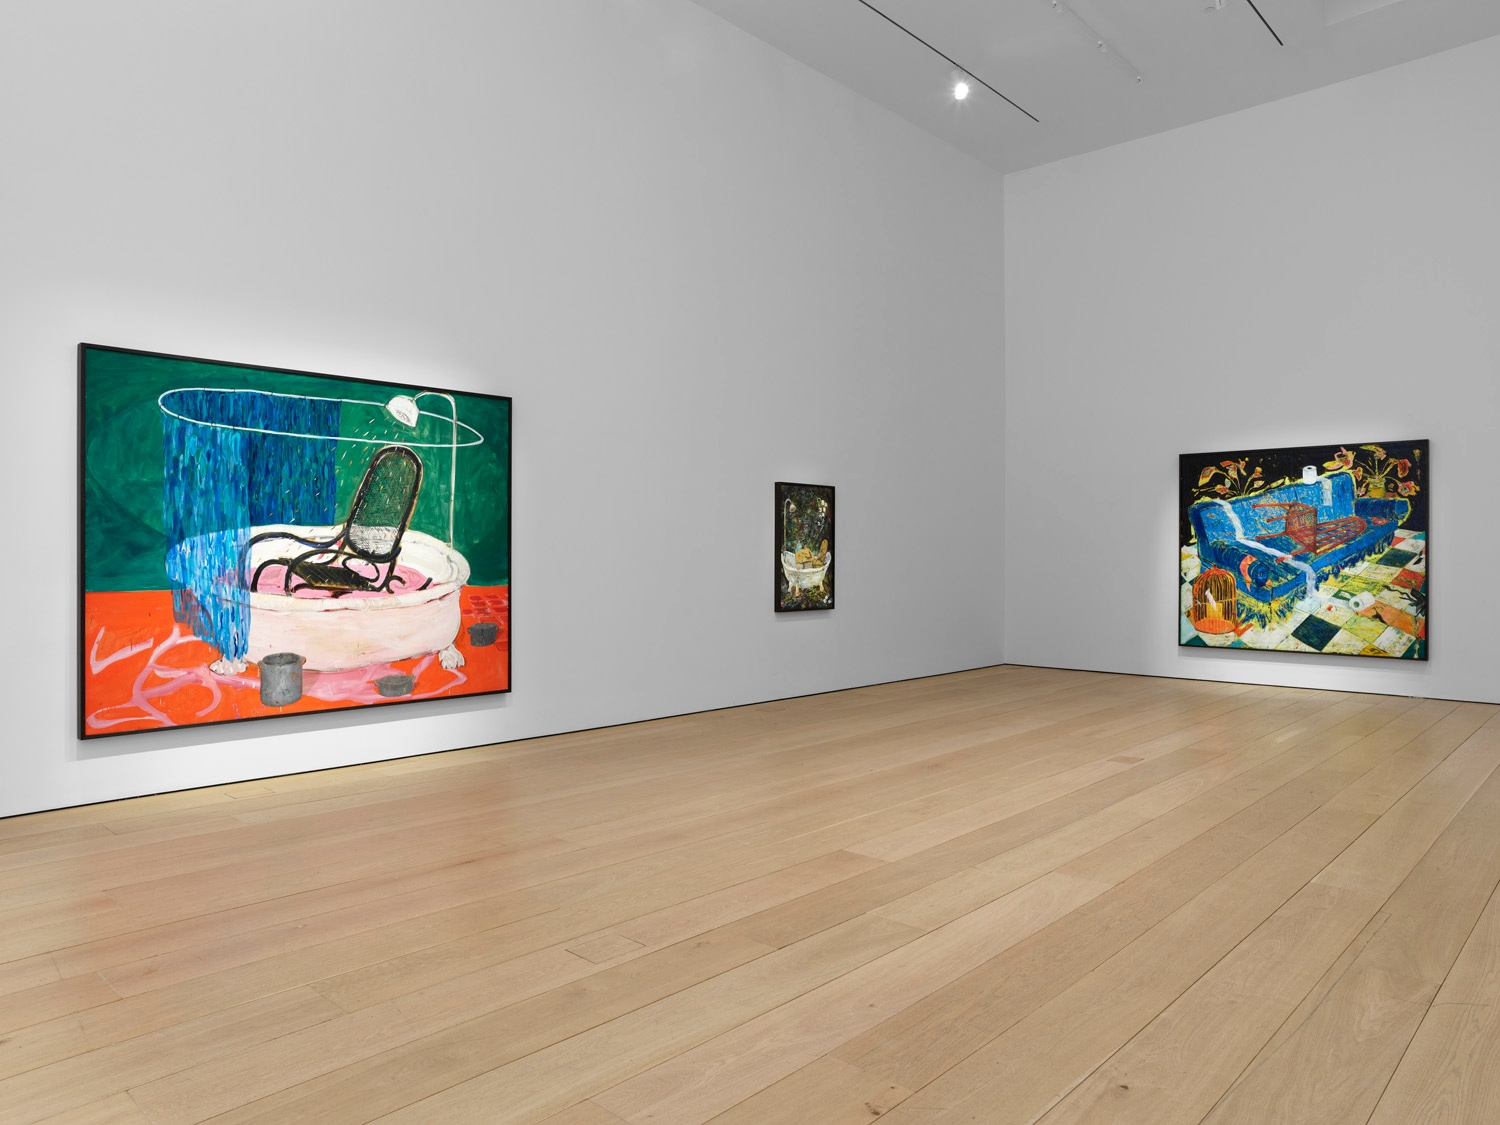 Fifth installation view of the exhibition Angel Otero: The Fortune of Having Been There at Lehmann Maupin in New York